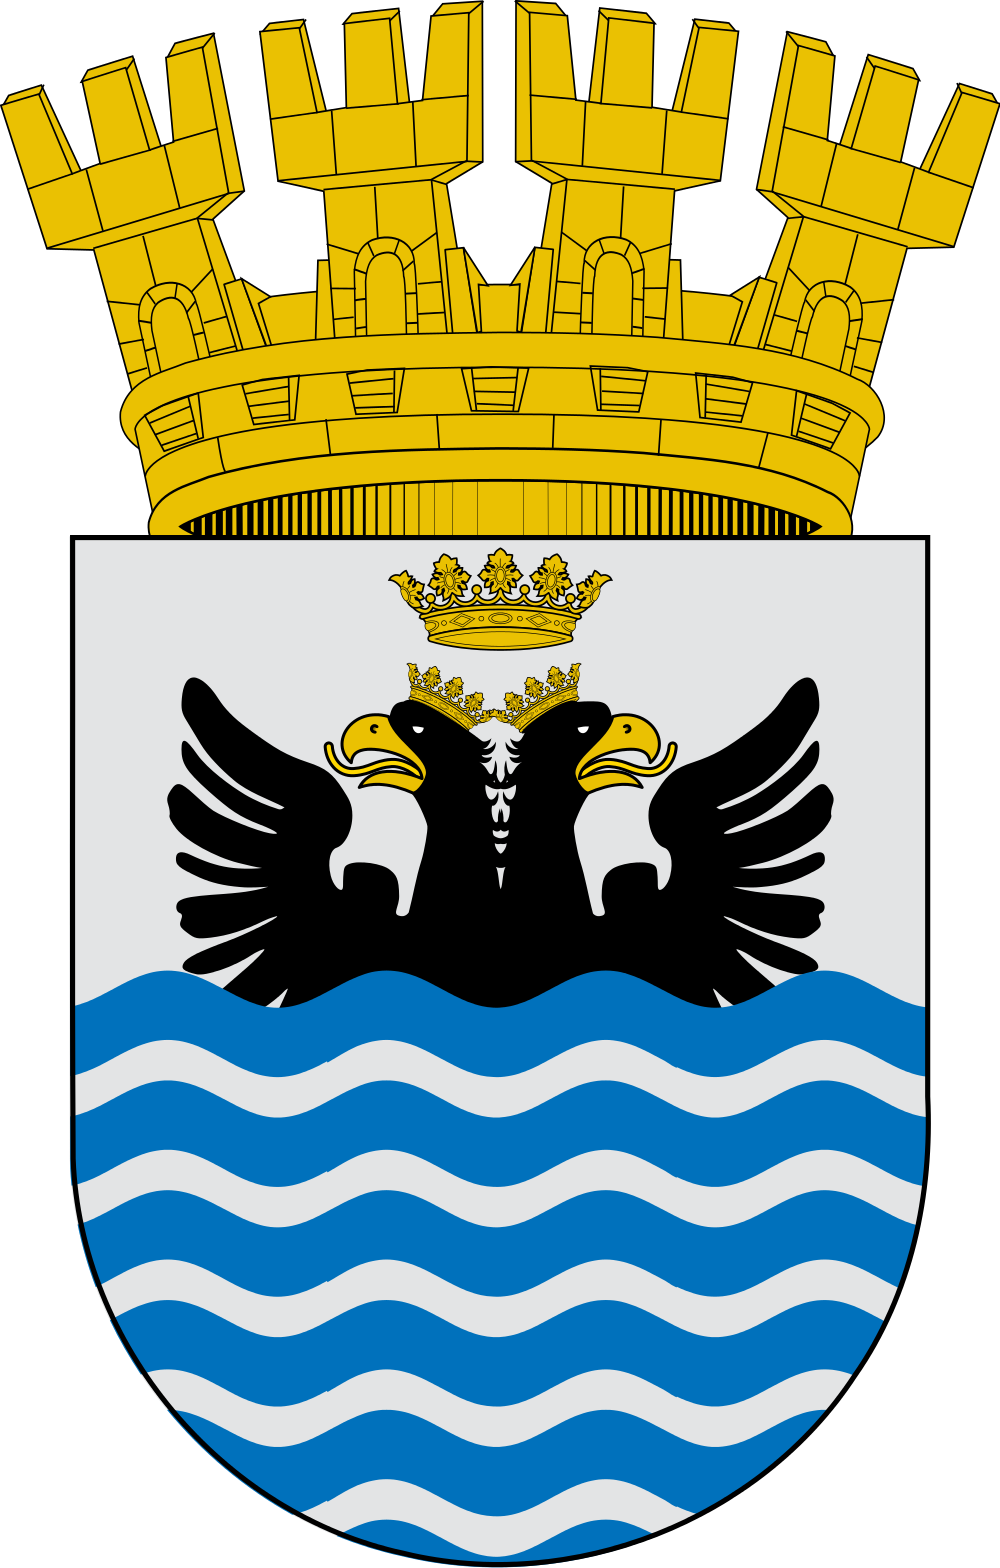 File:Escudo de Lago Ranco.svg.